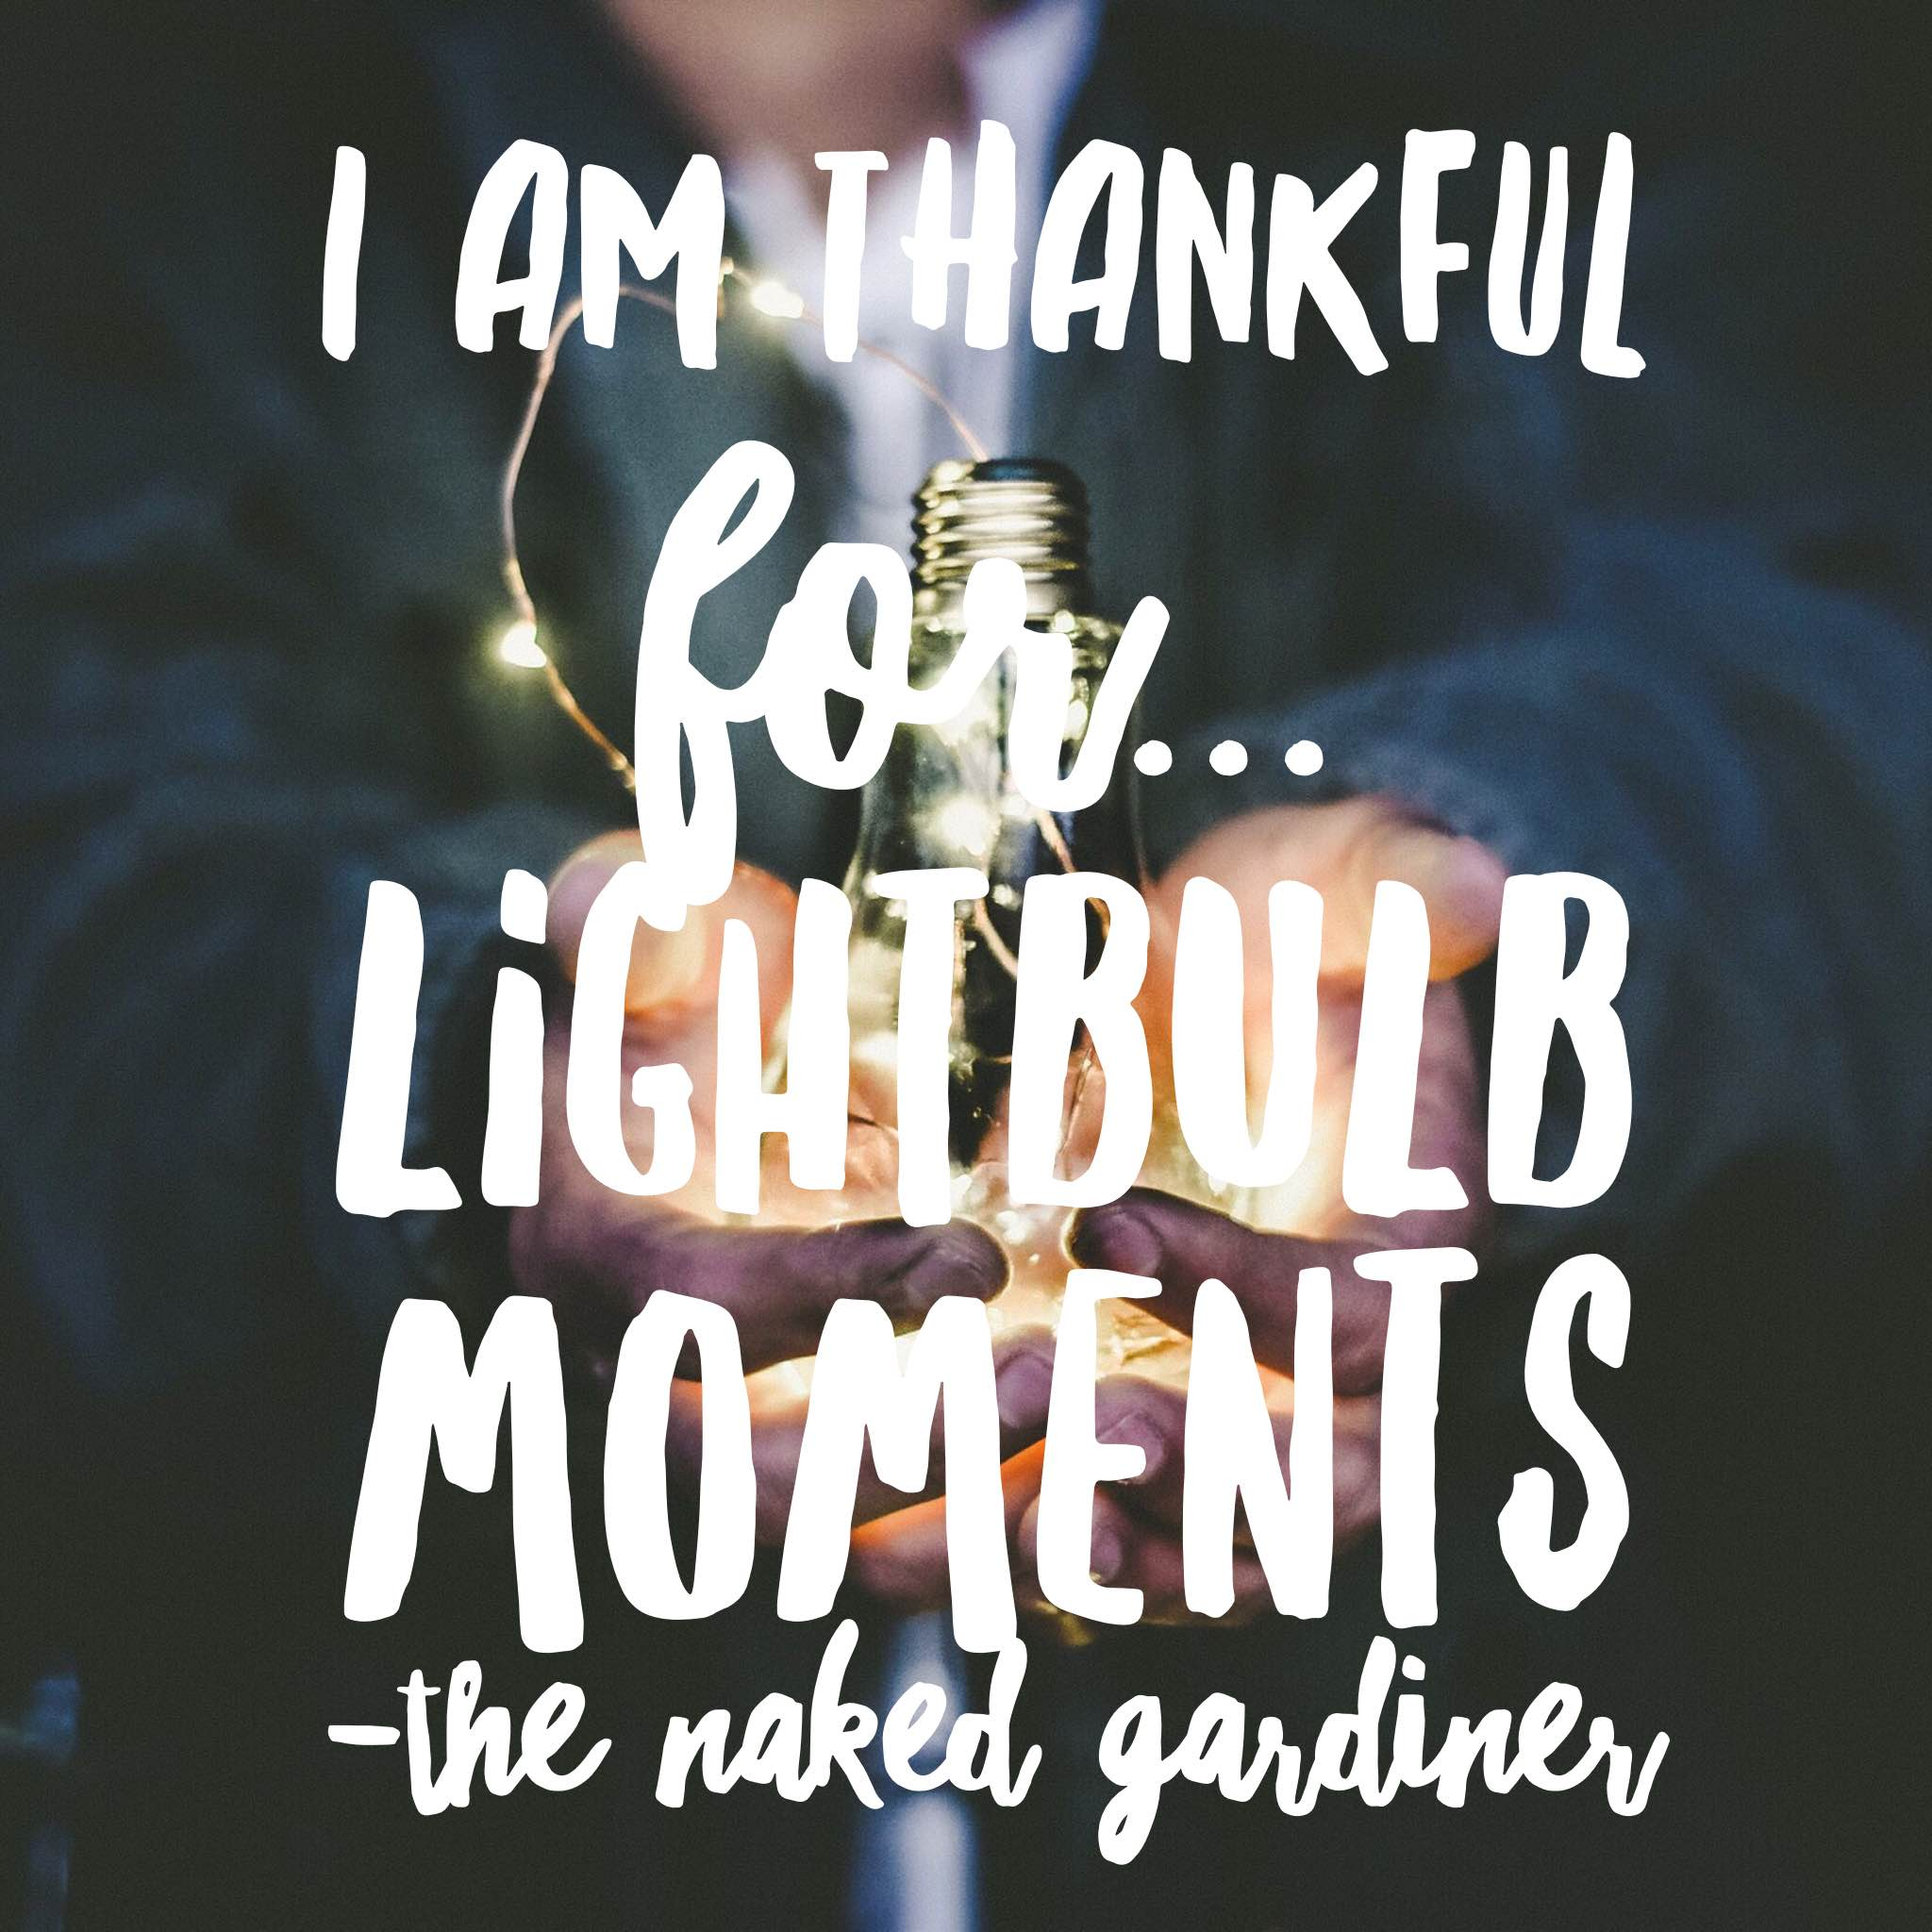 thankful-thursdays-lightbulb-moments-the-naked-gardiner-kathy-gardiner